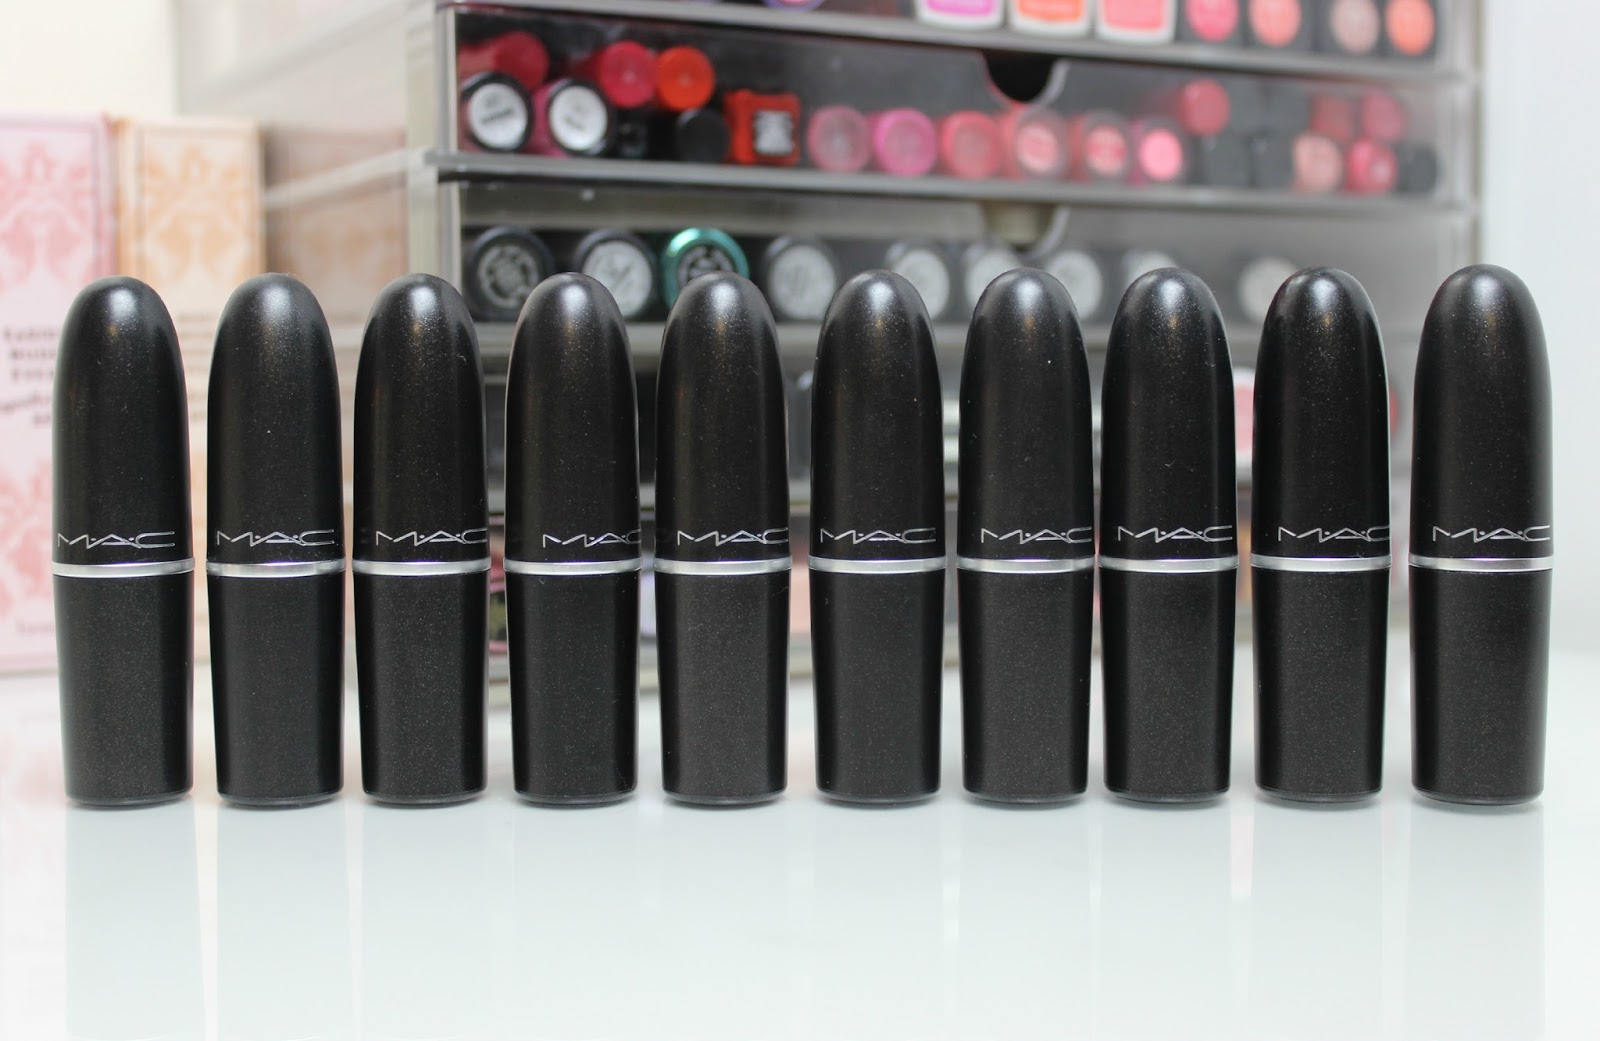 A picture of the top 10 MAC lipsticks